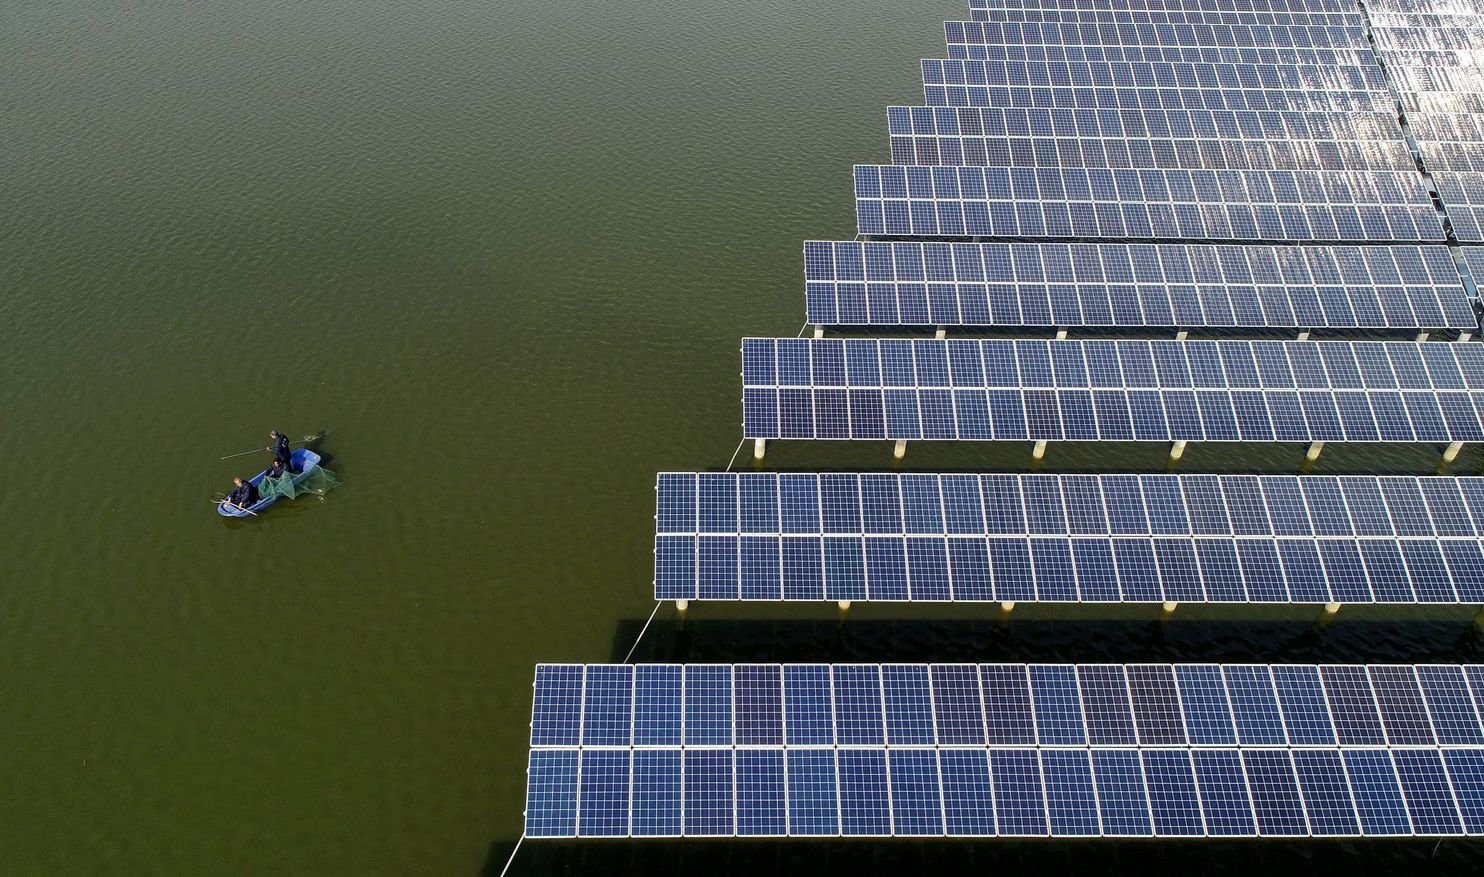 Chinese fishermen sit Nov. 14 next to a photovoltaic power station built on top of fish ponds in Yangzhou, in China